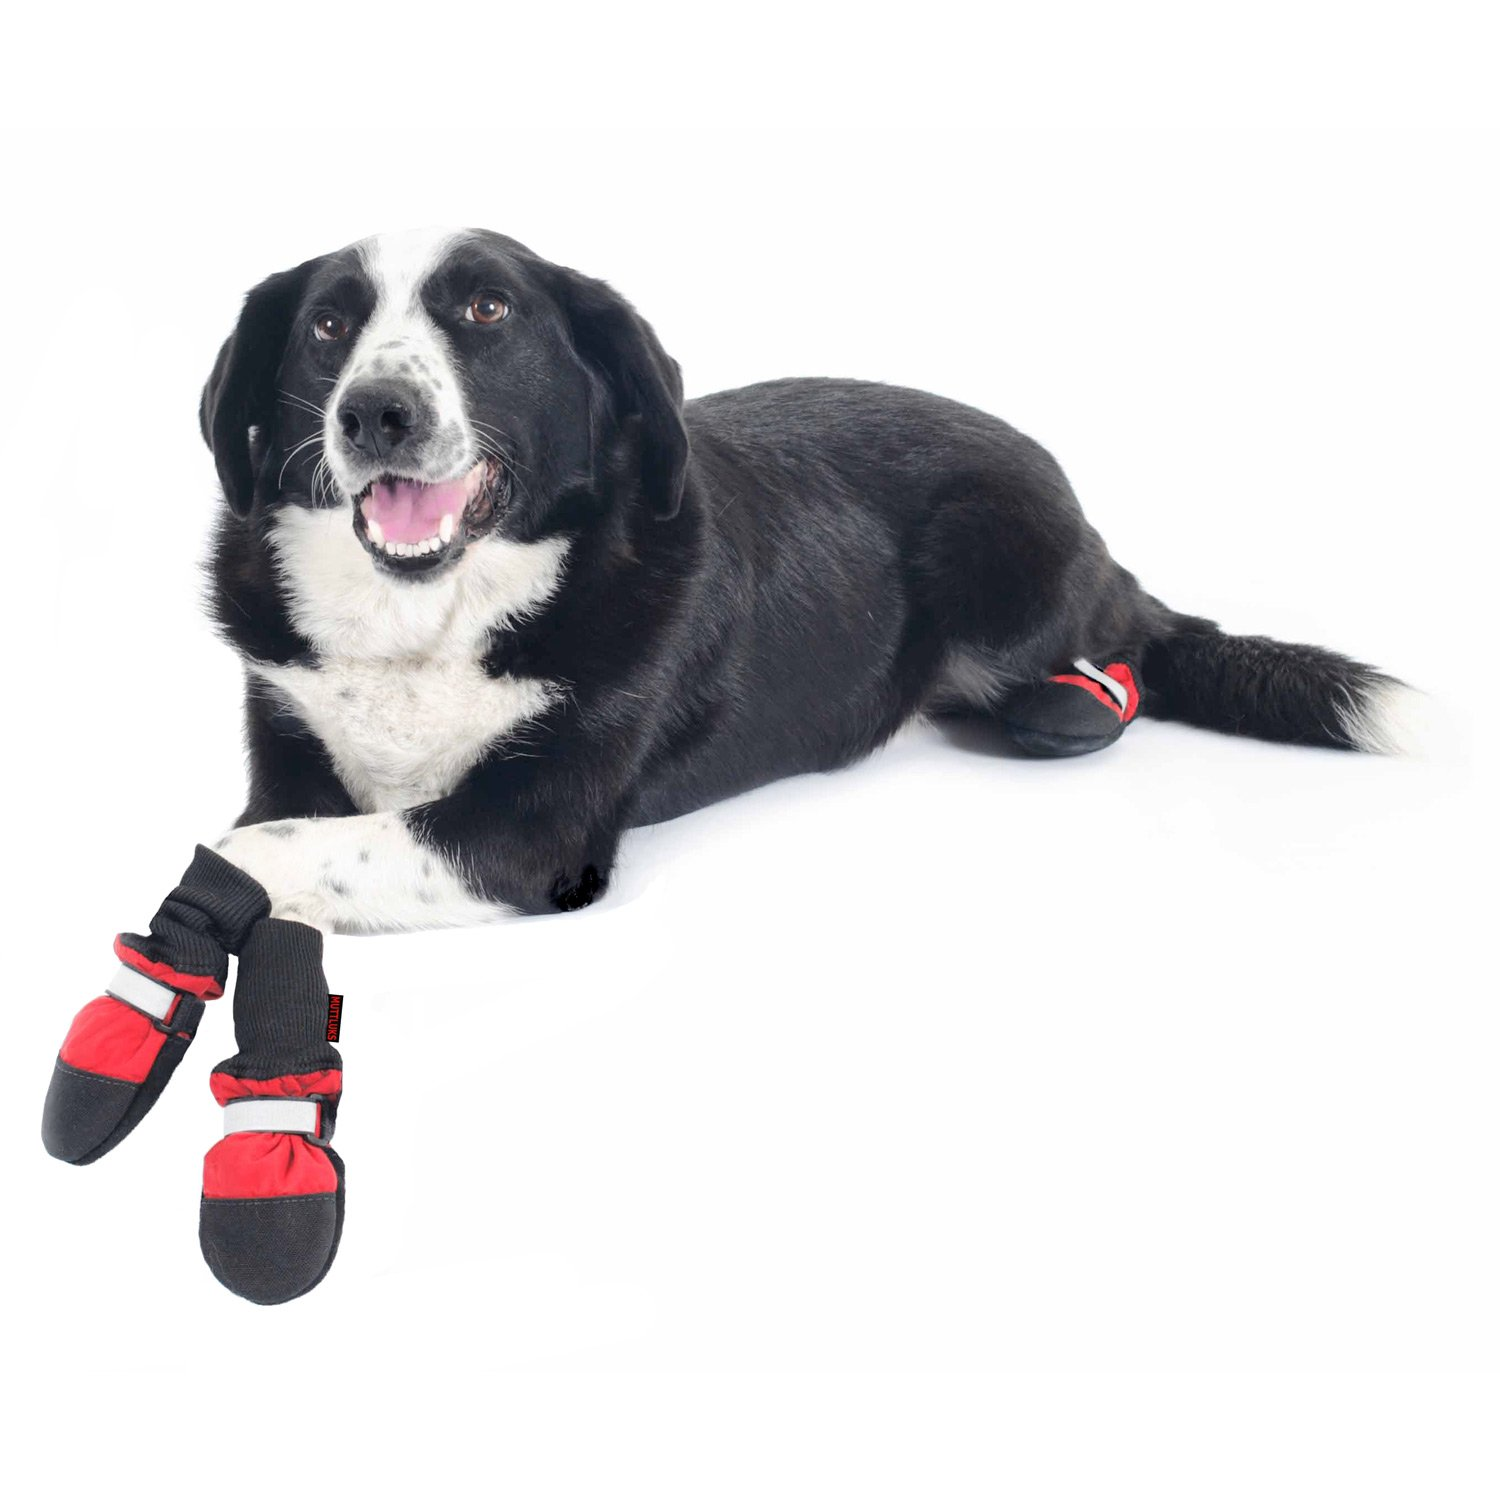 Dog Boots Shoes  Socks Puppy  Dog Booties Petco - Dog shoes for hardwood floors